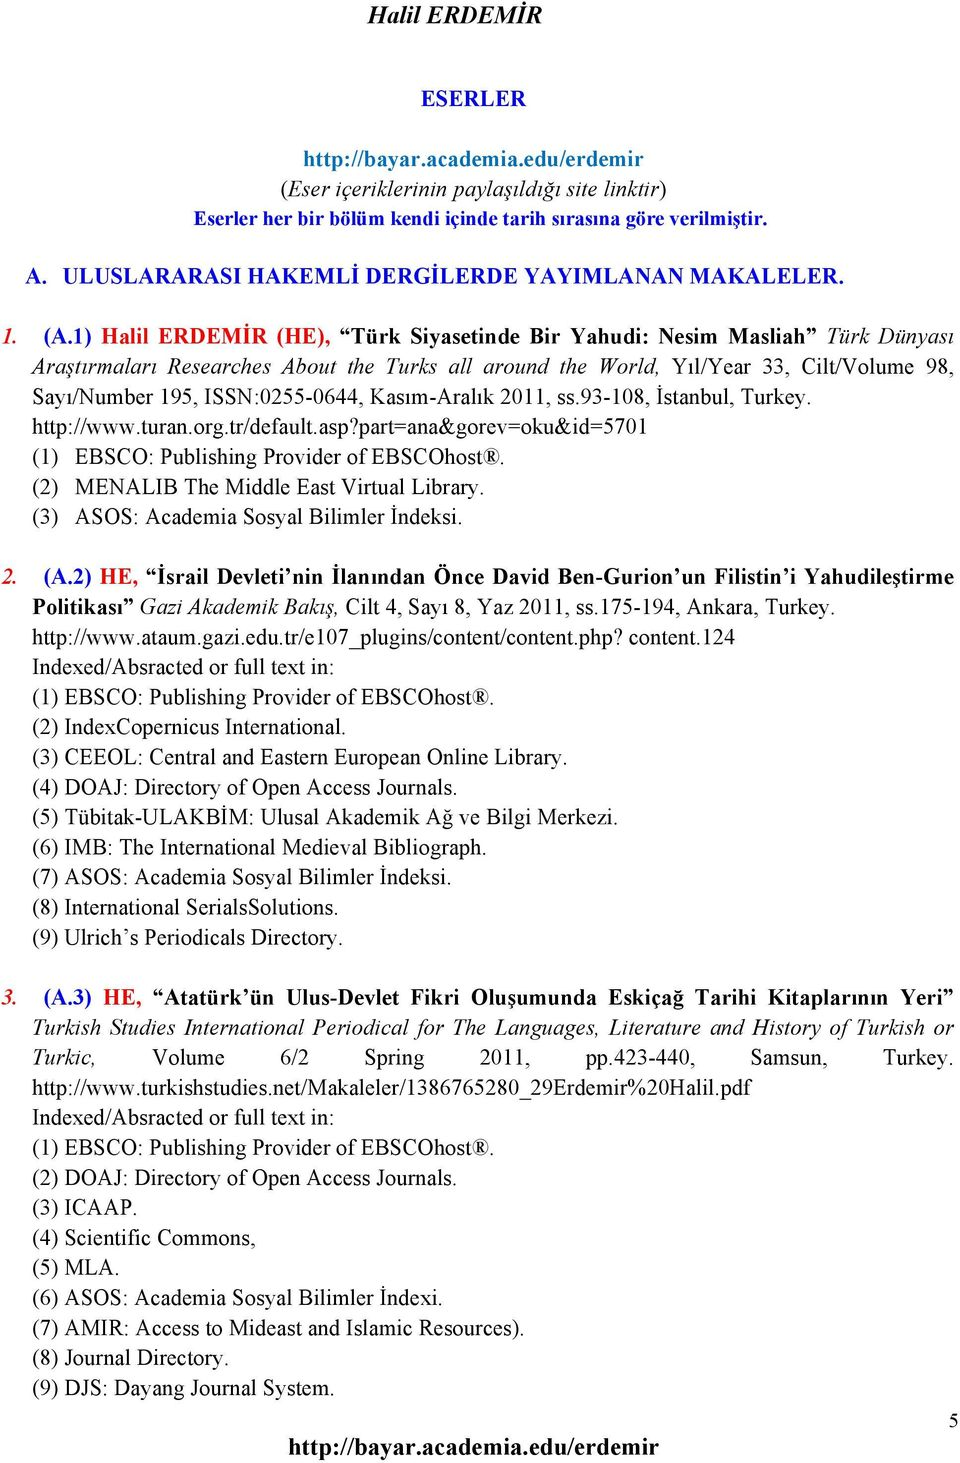 ISSN:0255-0644, Kasım-Aralık 2011, ss.93-108, İstanbul, Turkey. http://www.turan.org.tr/default.asp?part=ana&gorev=oku&id=5701 (1) EBSCO: Publishing Provider of EBSCOhost.